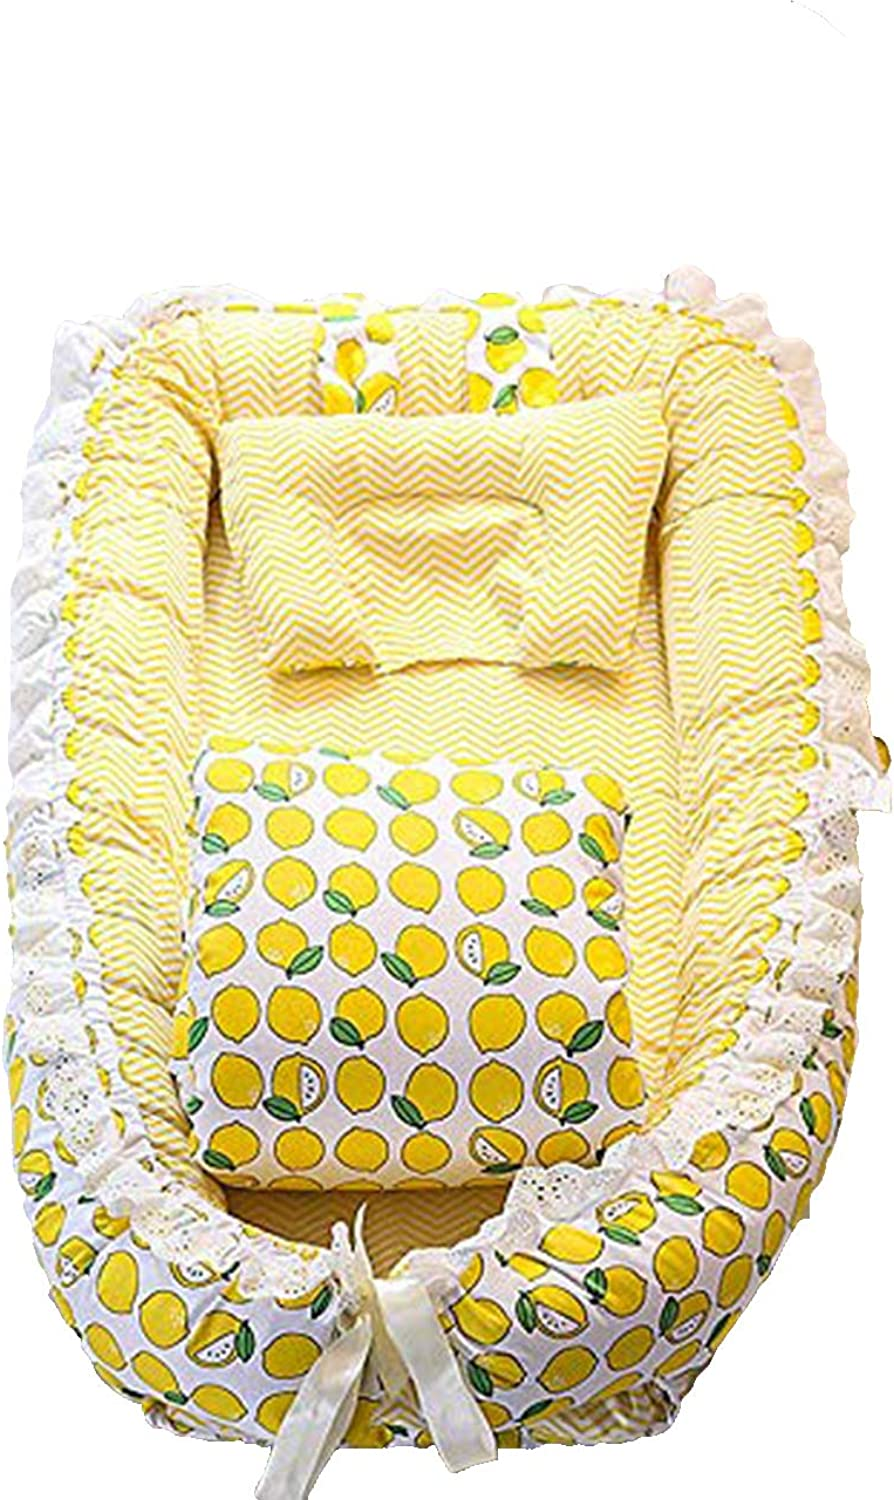 Baby Lounger for Bed,Portable Baby Nest for Newborn,100% Cotton Breathable and Hypoallergenic Sleep Nest Newborn Lounger Pillow for Bedroom Travel Camping-Lightning + Mango Pattern